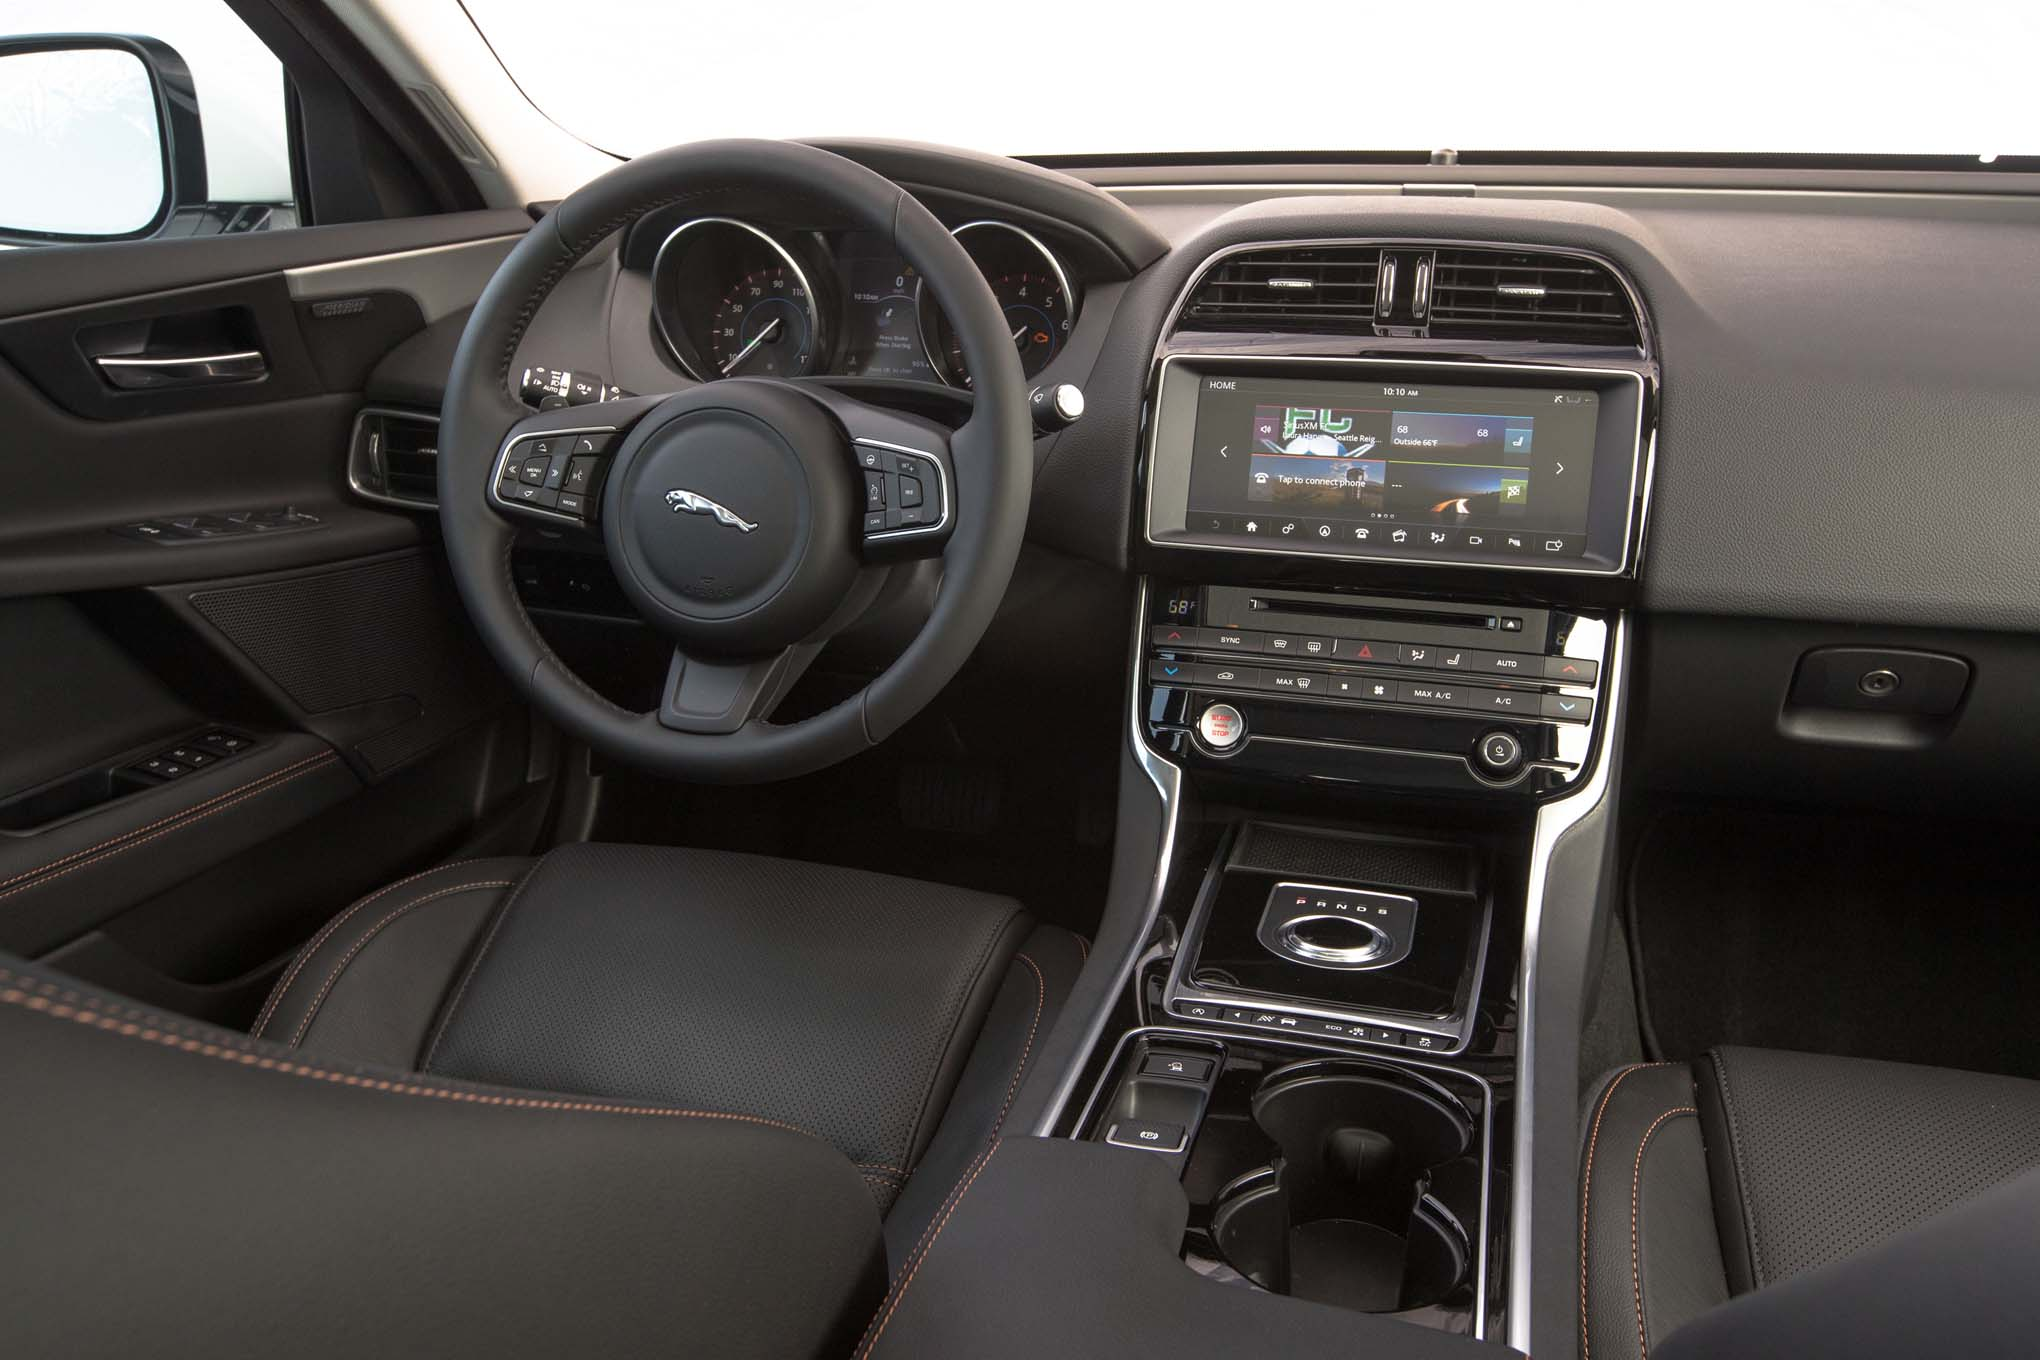 jaguar car 2017 interior - photo #3